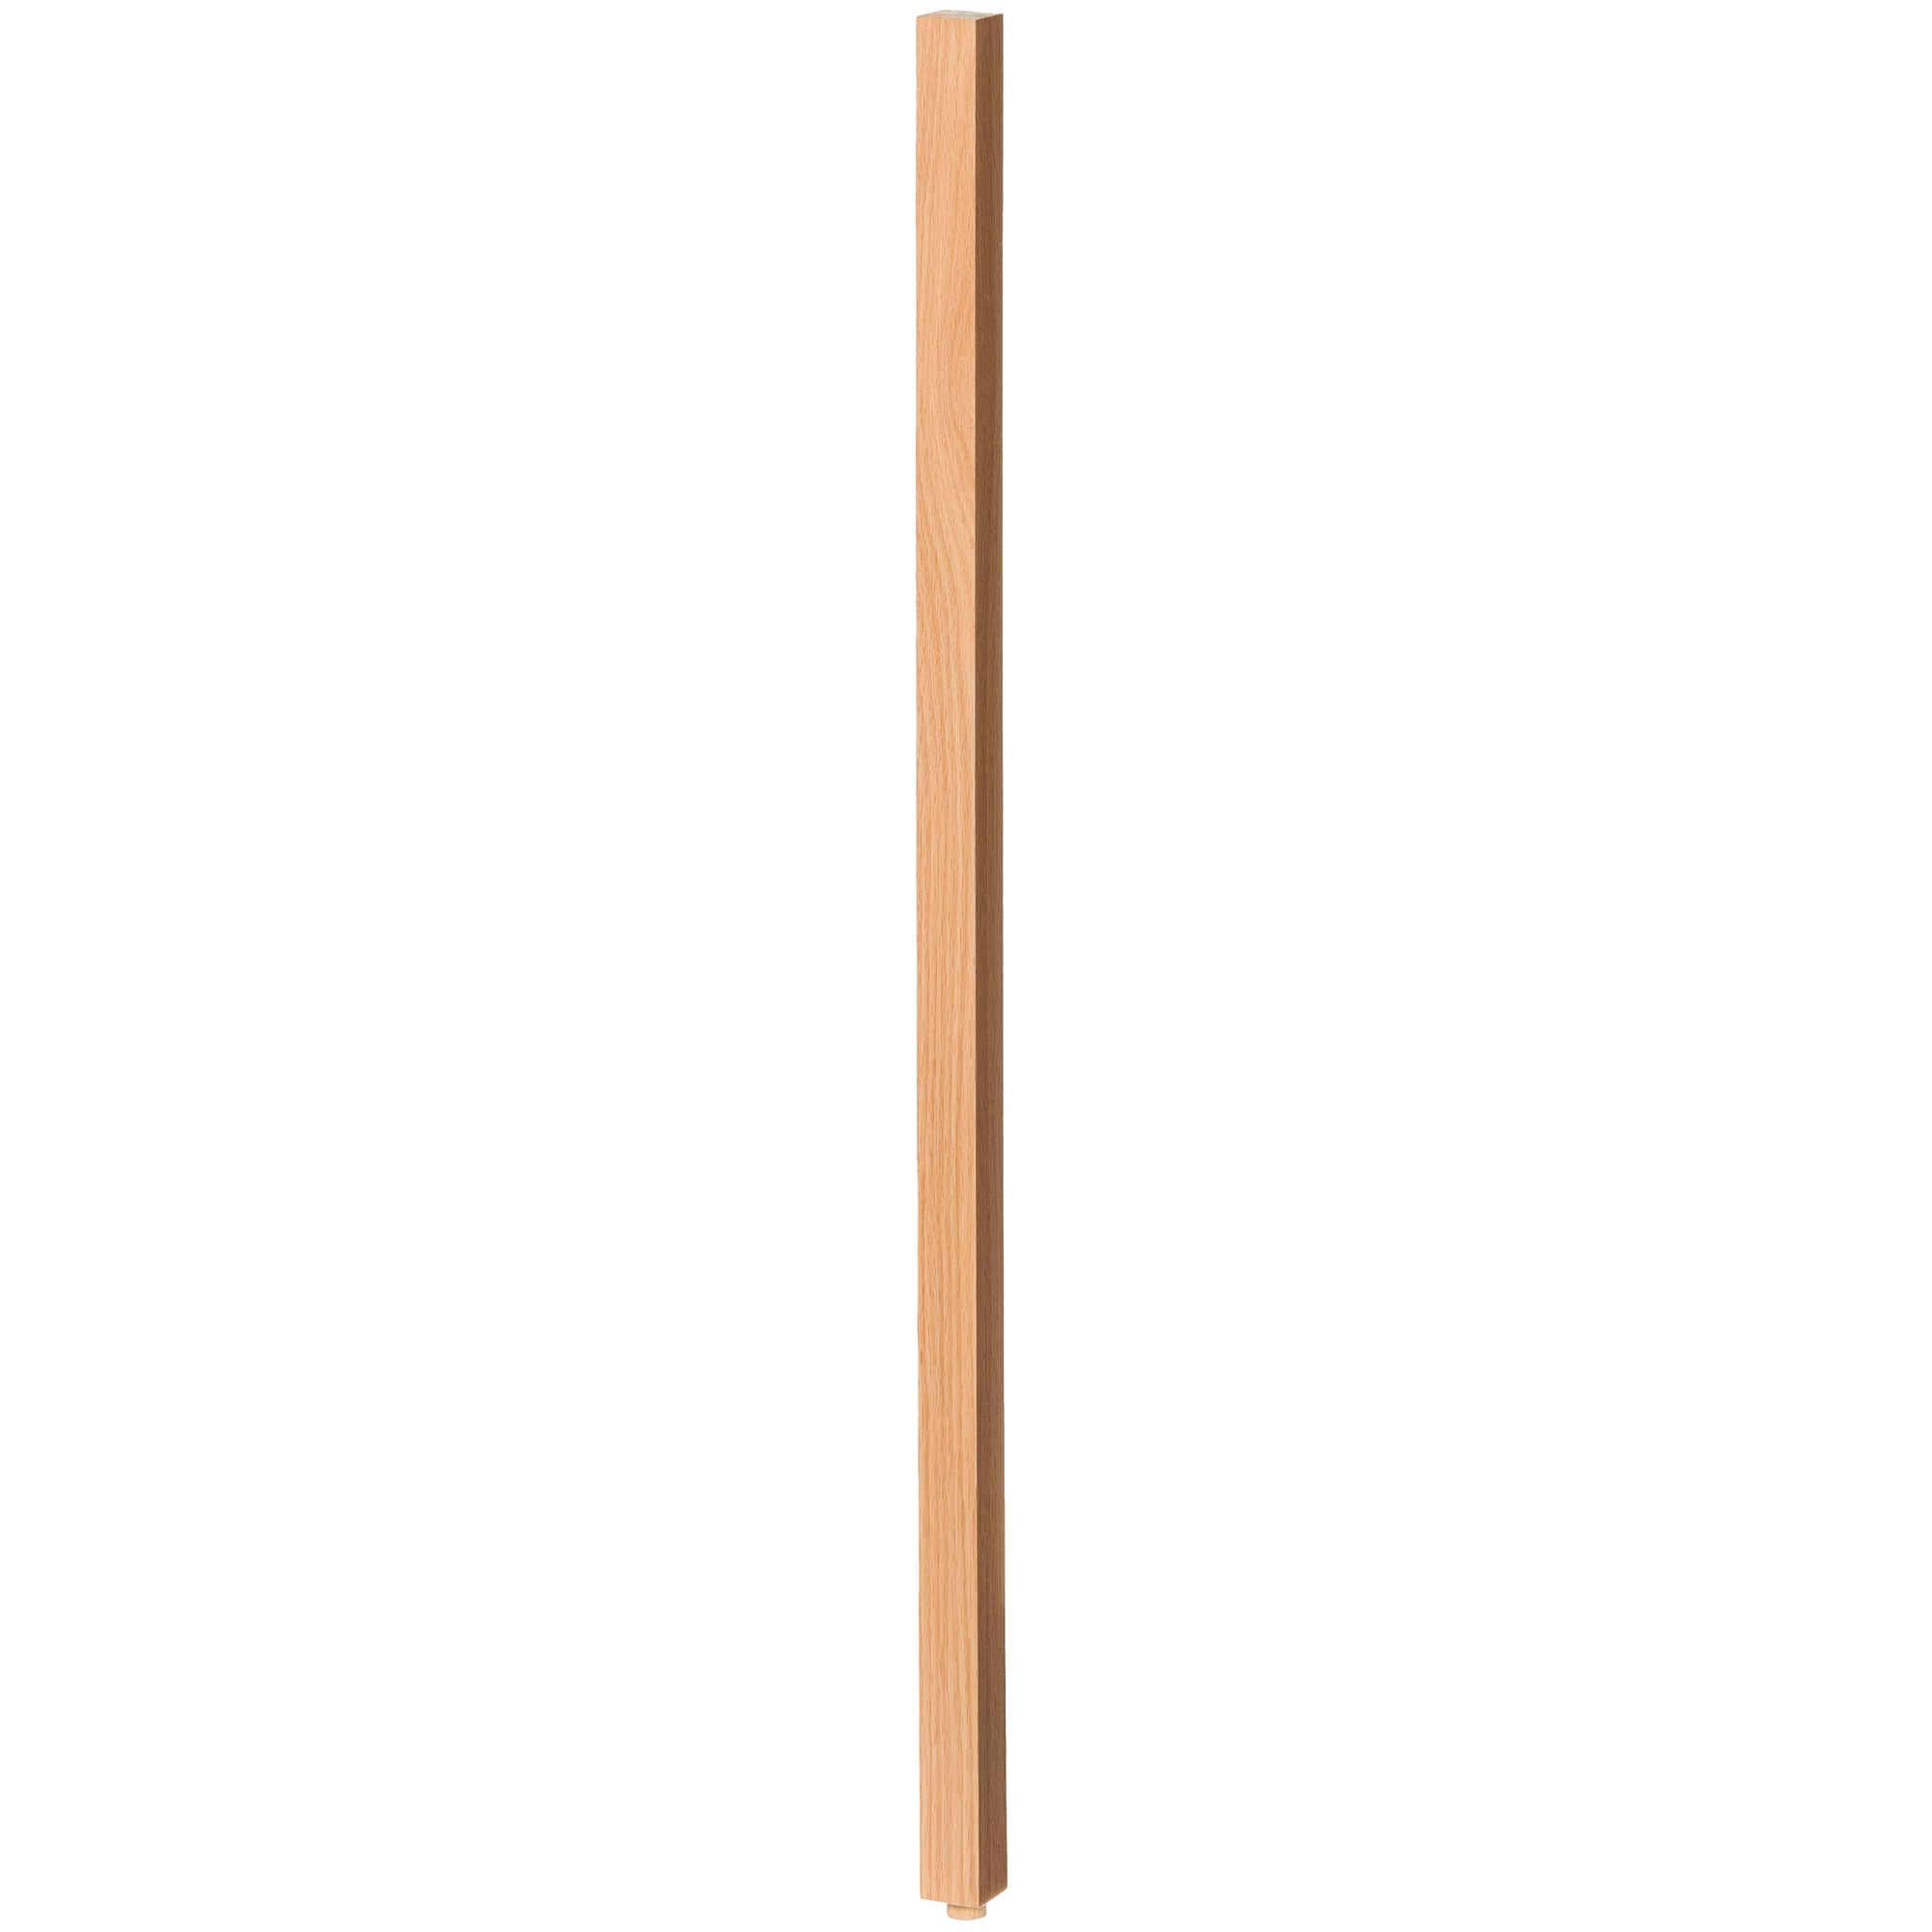 "Contemporary 1-1/4"" 5061 Plain Square Top Baluster w/Dowel"